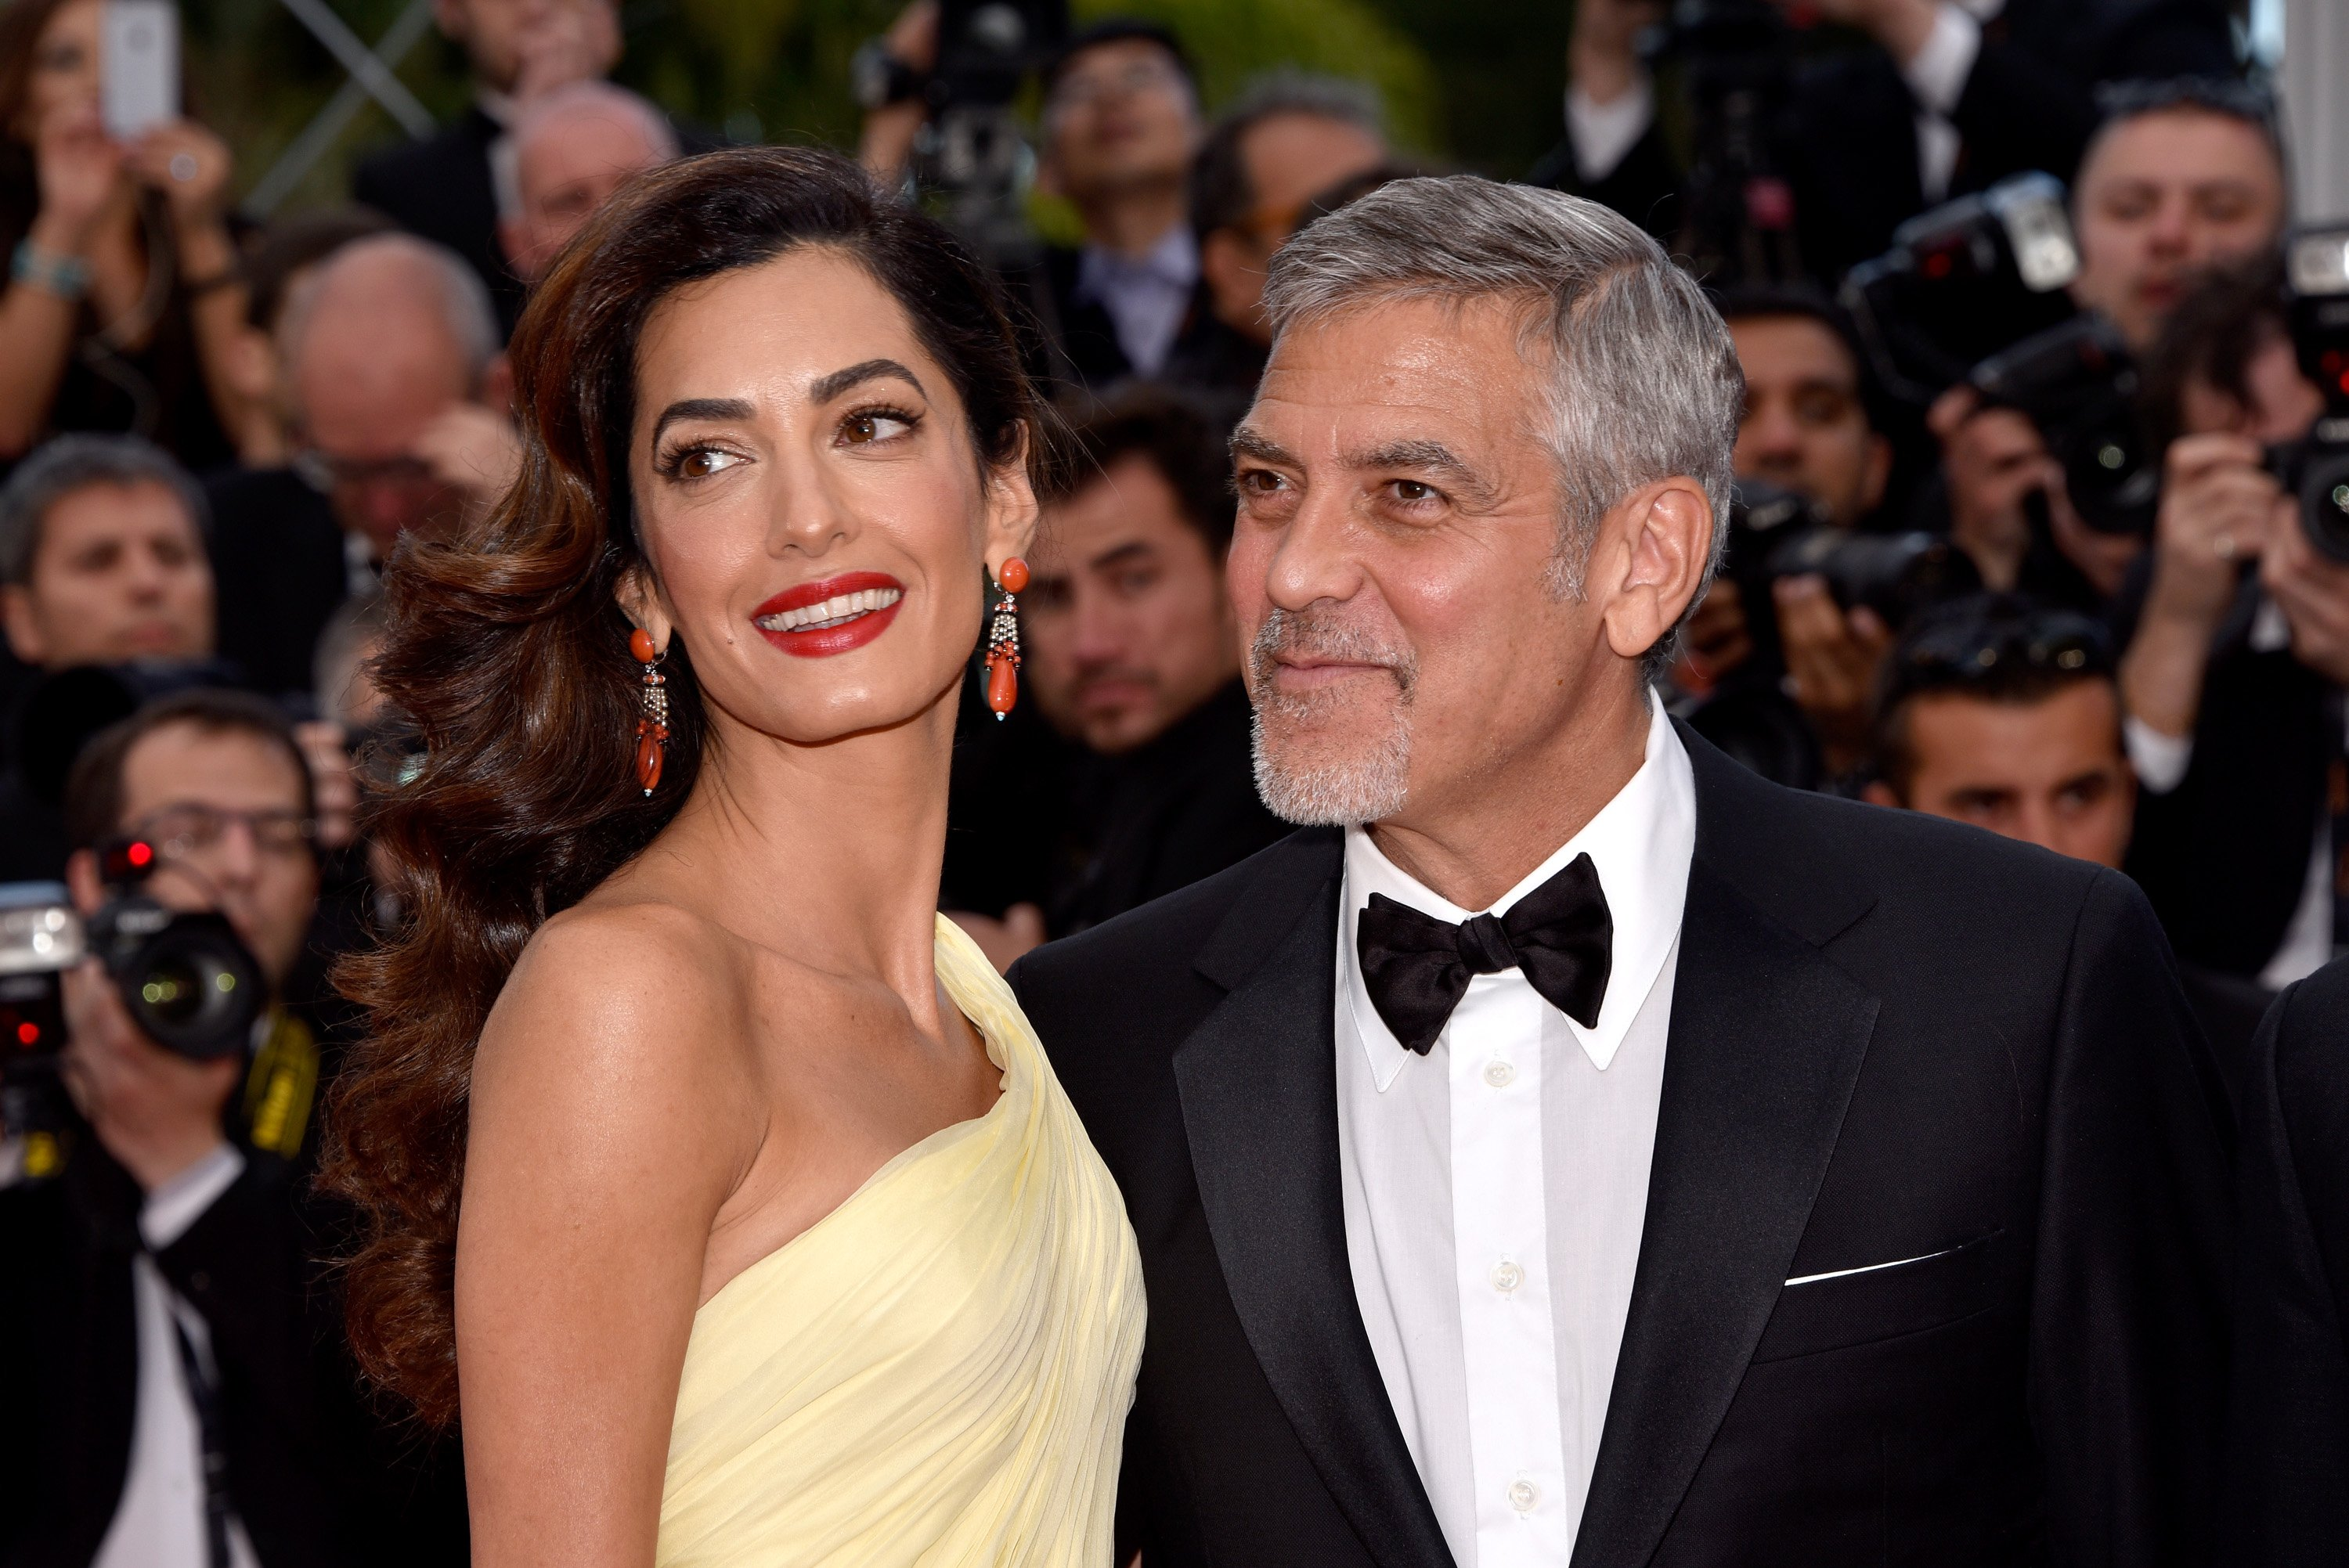 """George Clooney and his wife Amal Clooney attend the """"Money Monster"""" premiere during the 69th annual Cannes Film Festival at the Palais des Festivals on May 12, 2016 in Cannes, France. 